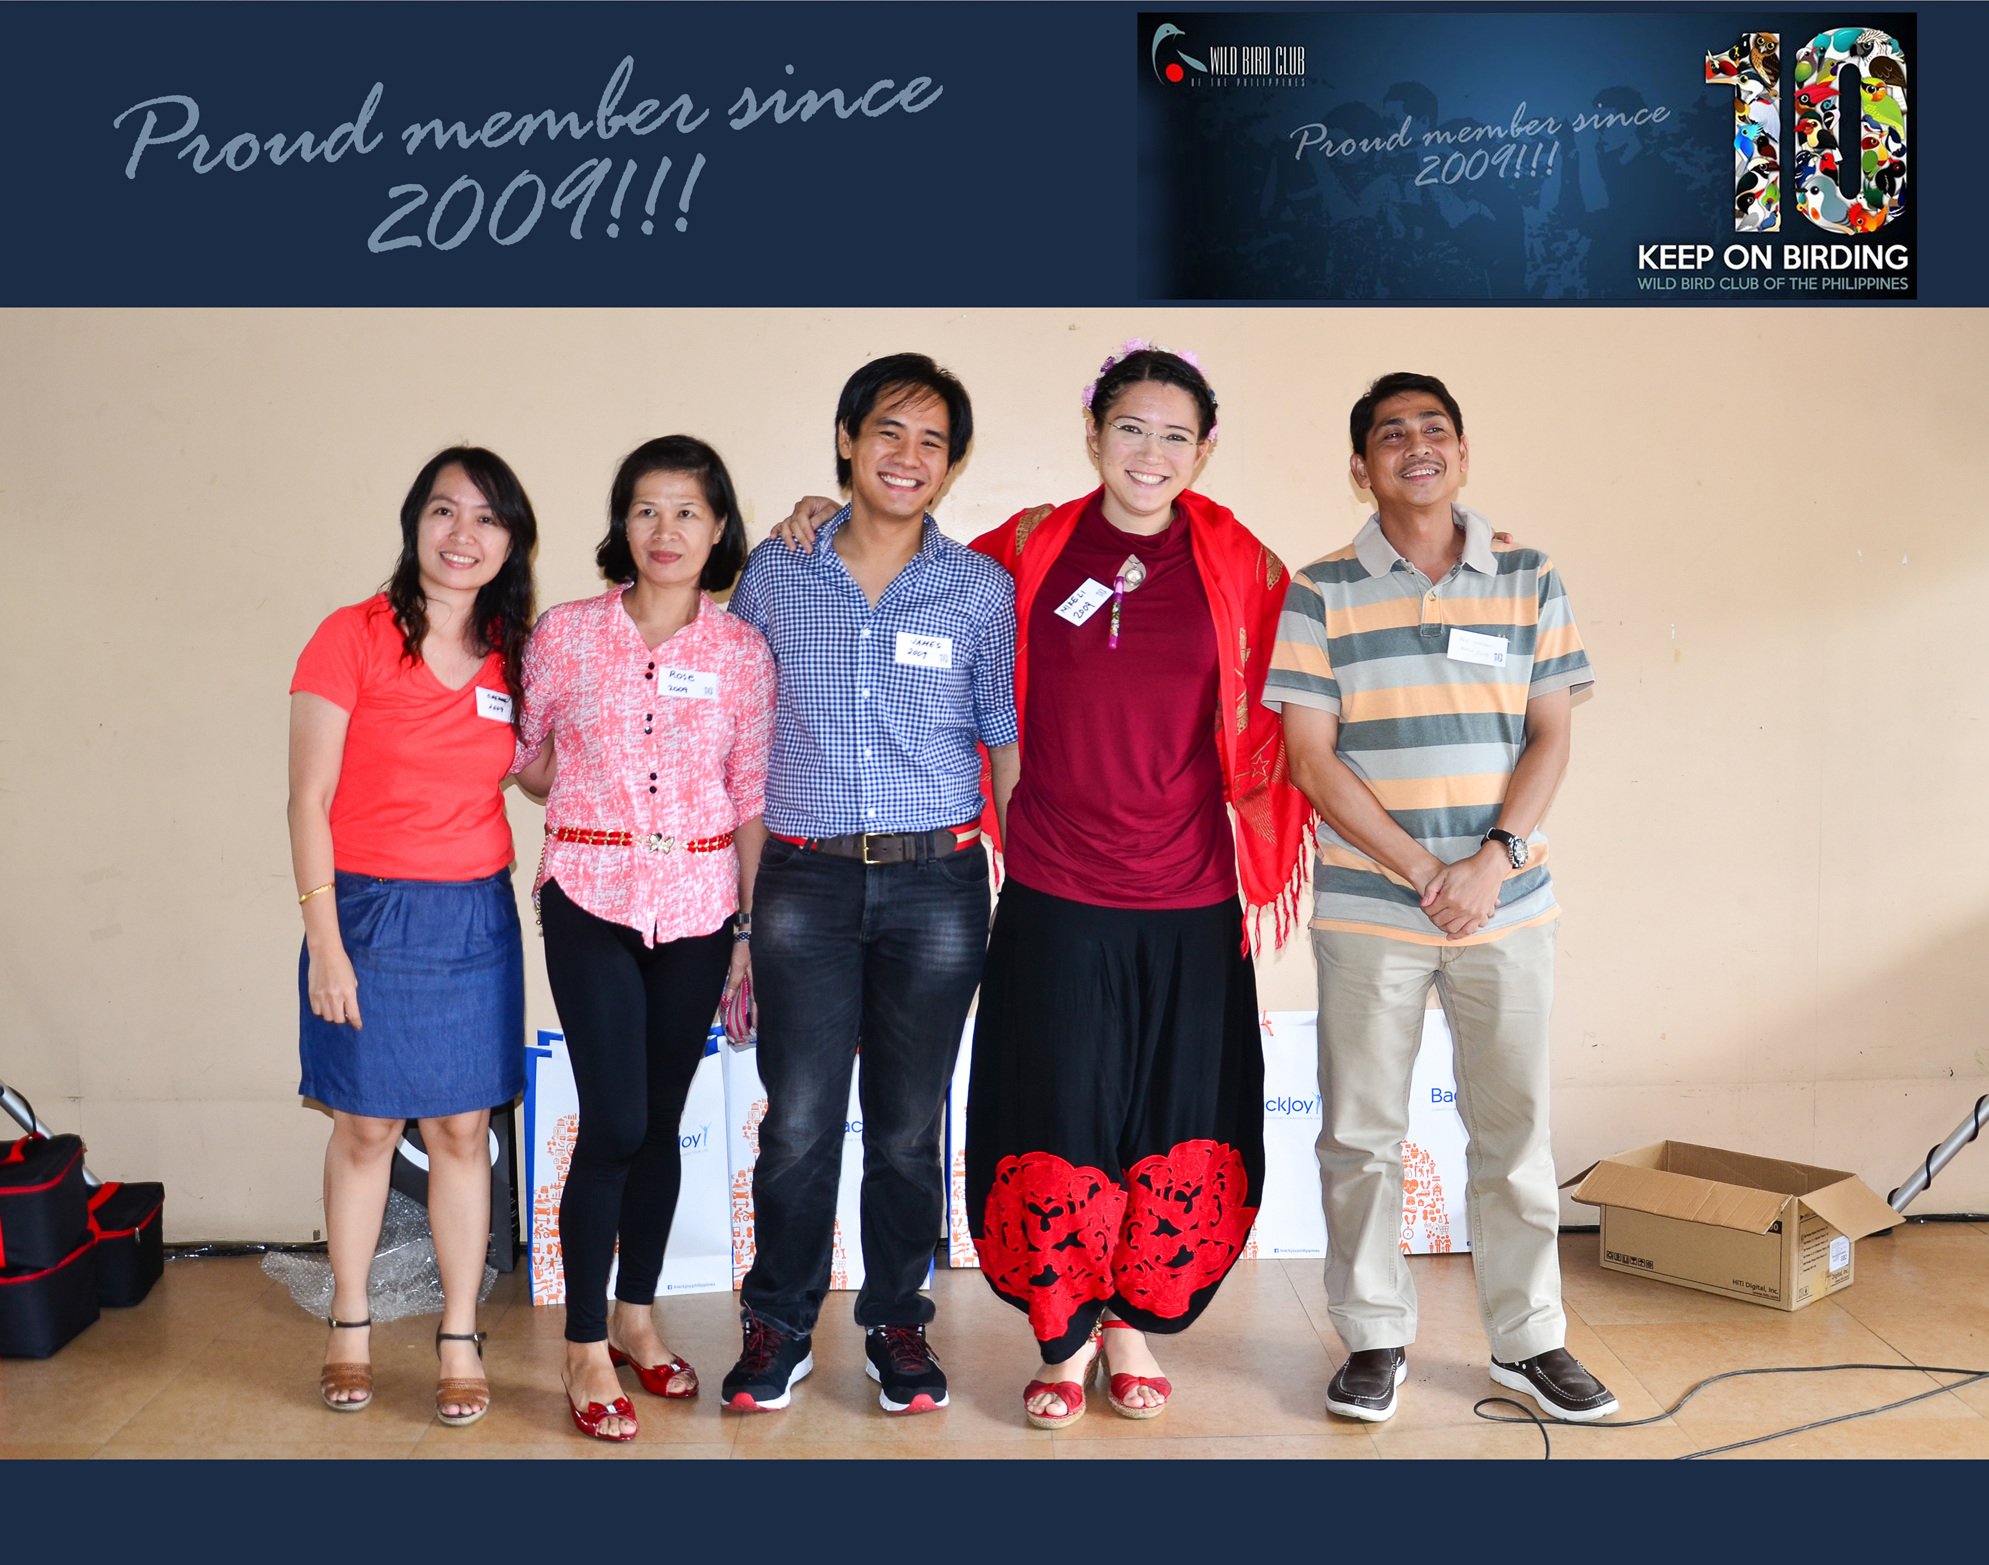 WBCP Batch 2009: ______, Rose Lacson, James Asprer, Mikeli Mapua, _____. Photo by Marites Falcon.